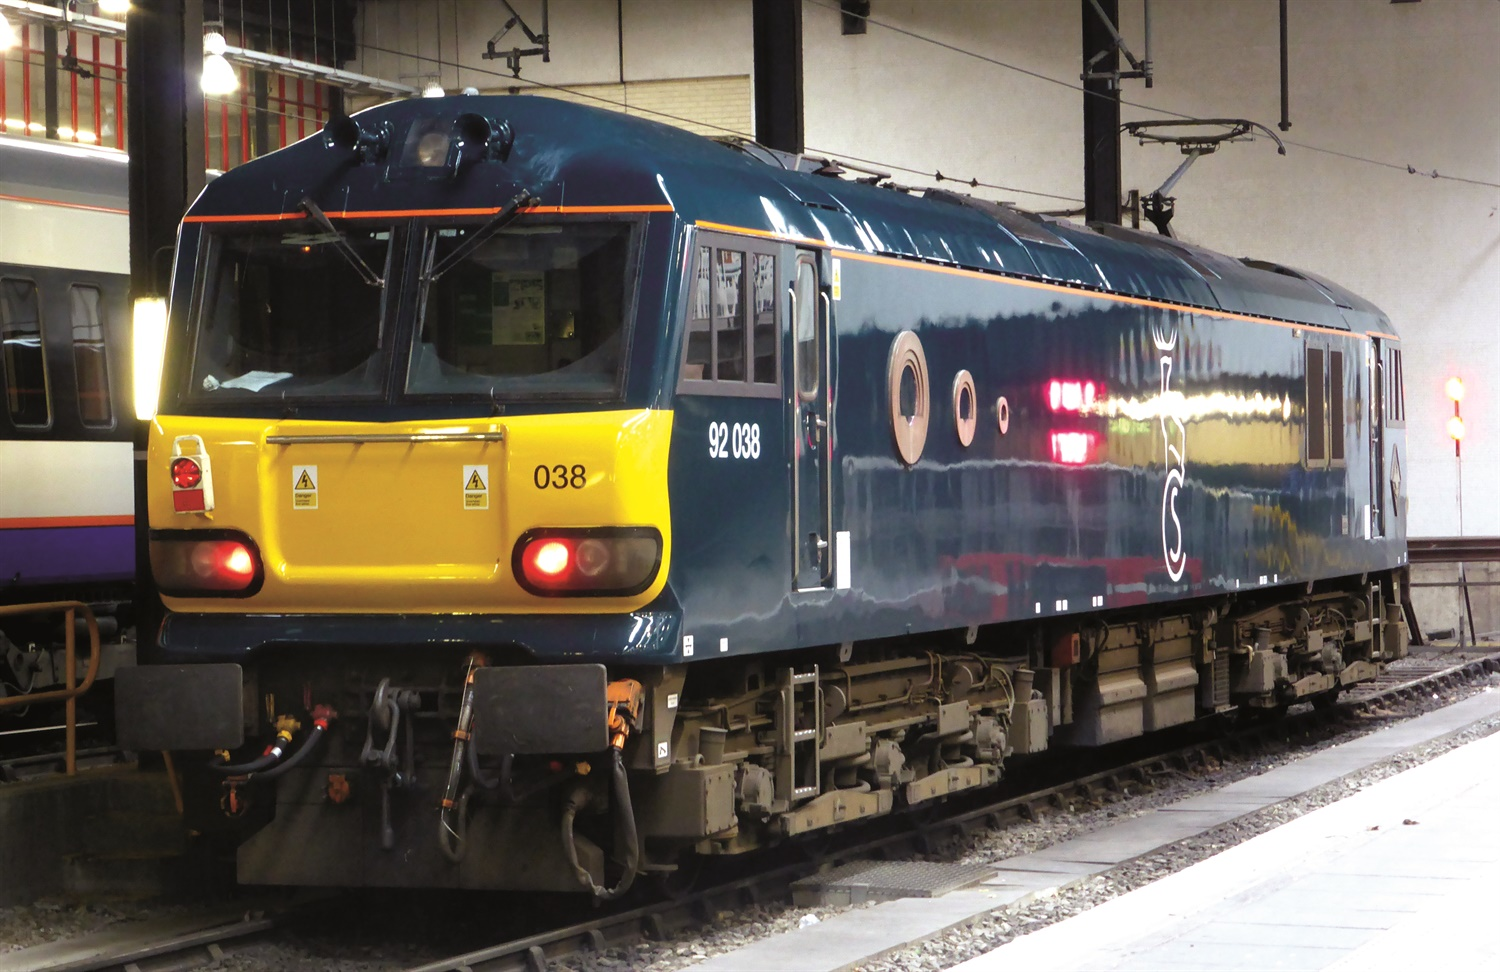 Caledonian sleeper: Poor performance figures and the role of new loco's